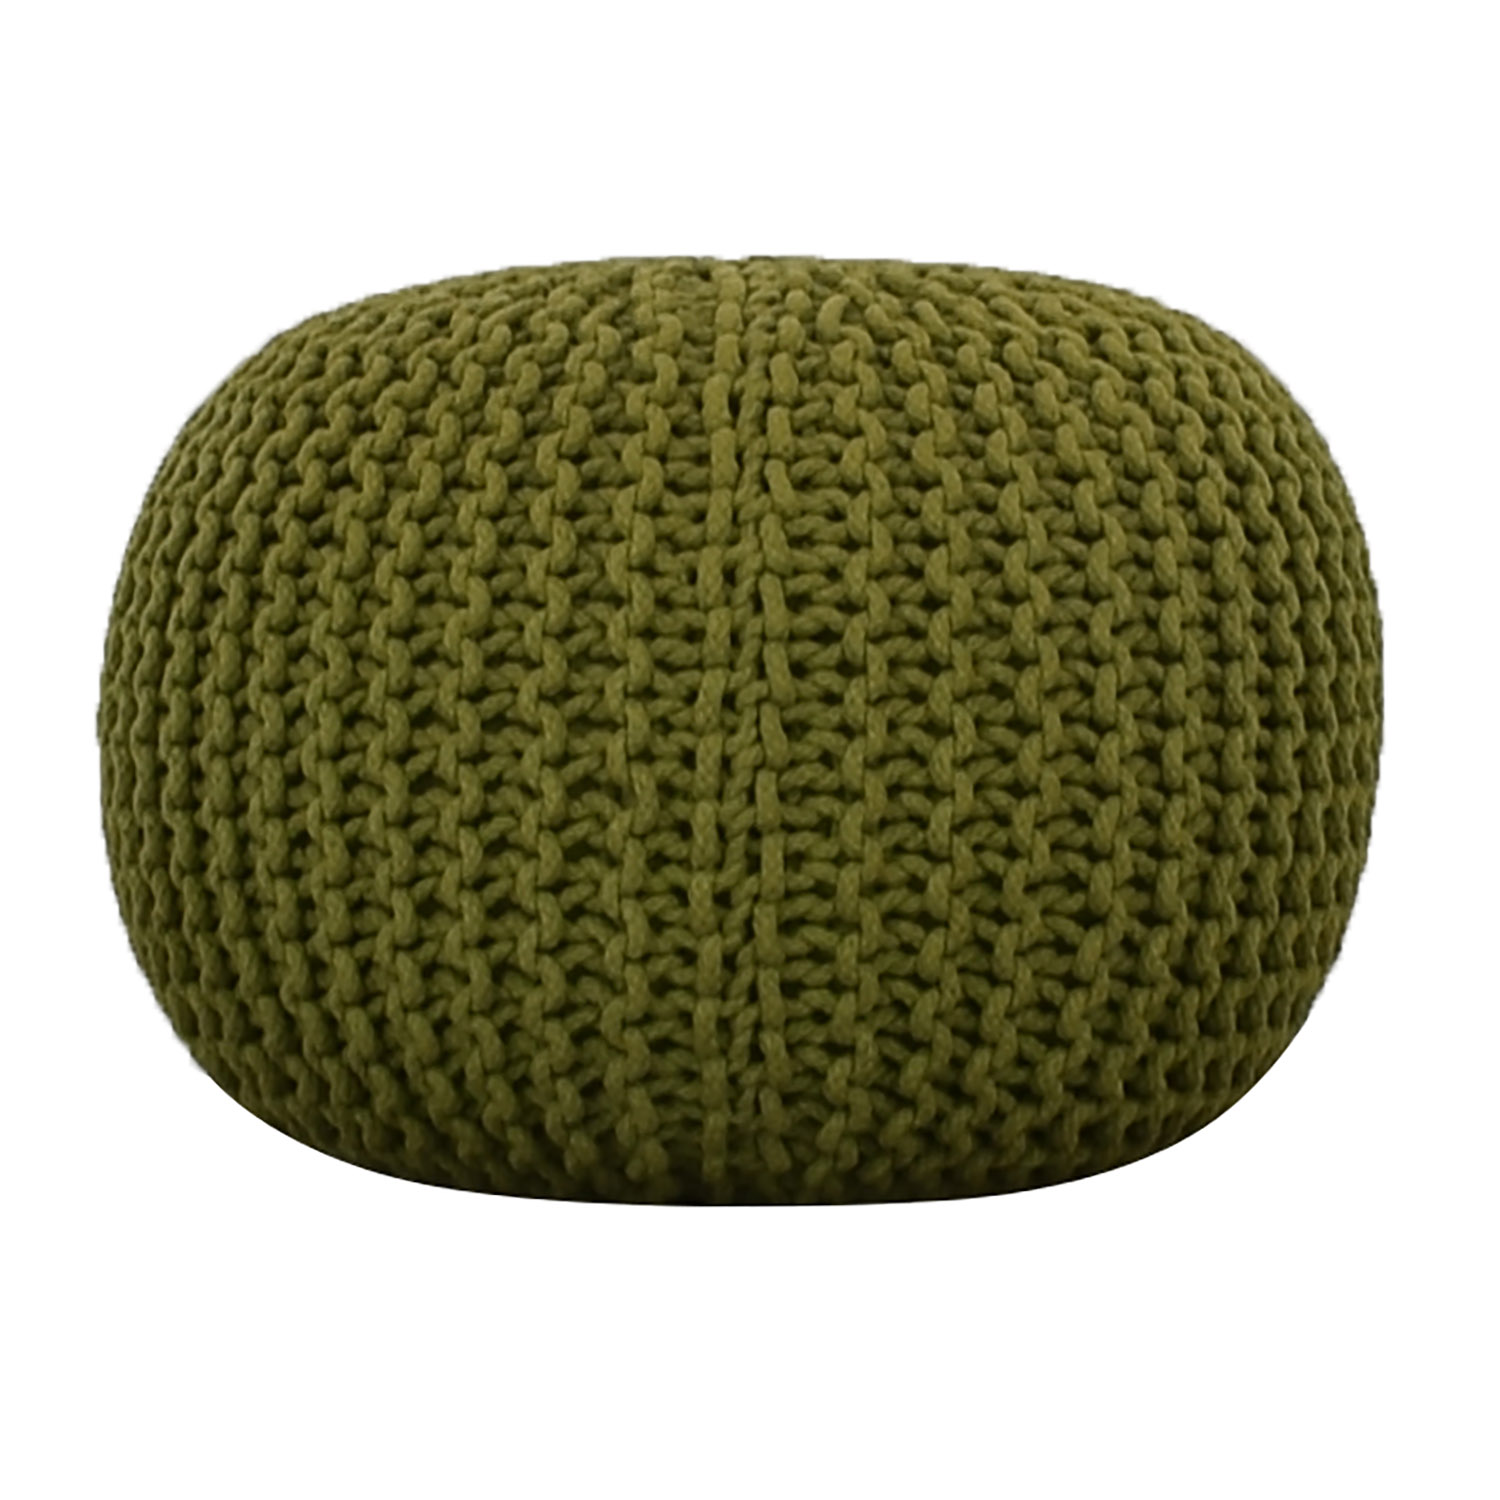 CB2 CB2 Green Rope Puff Ottoman used